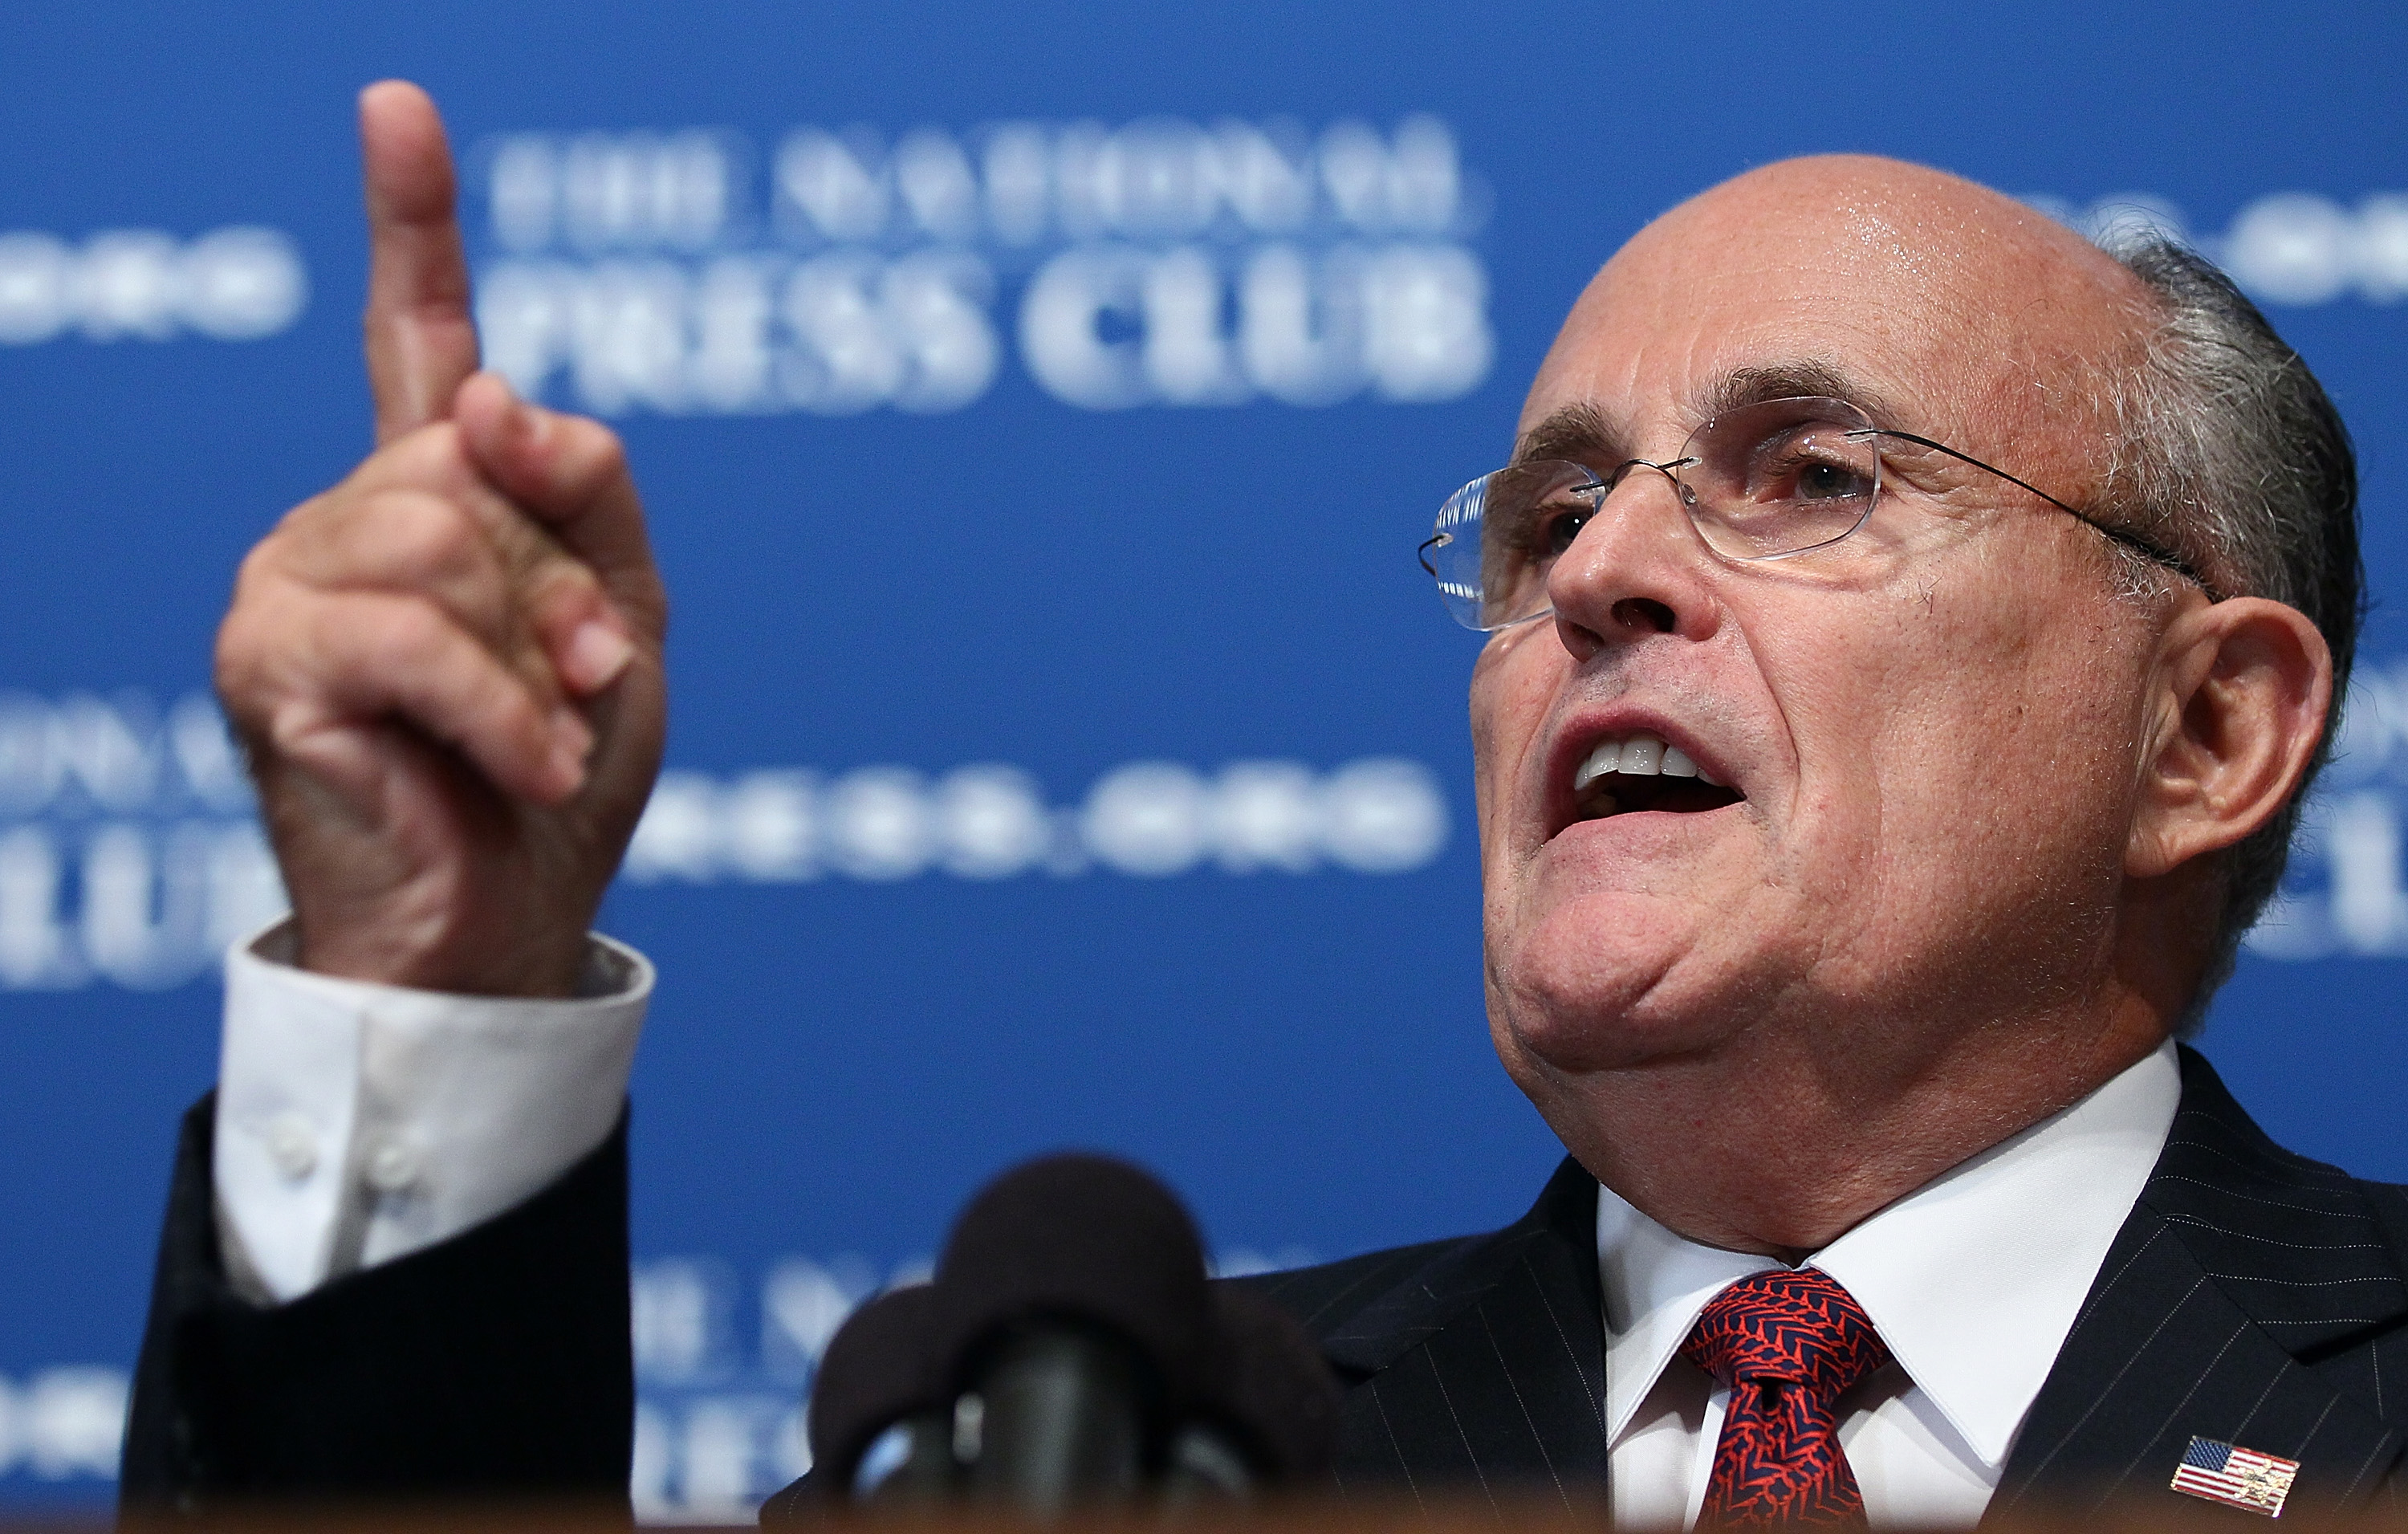 Rudy Giuliani (Photo: Getty Images).